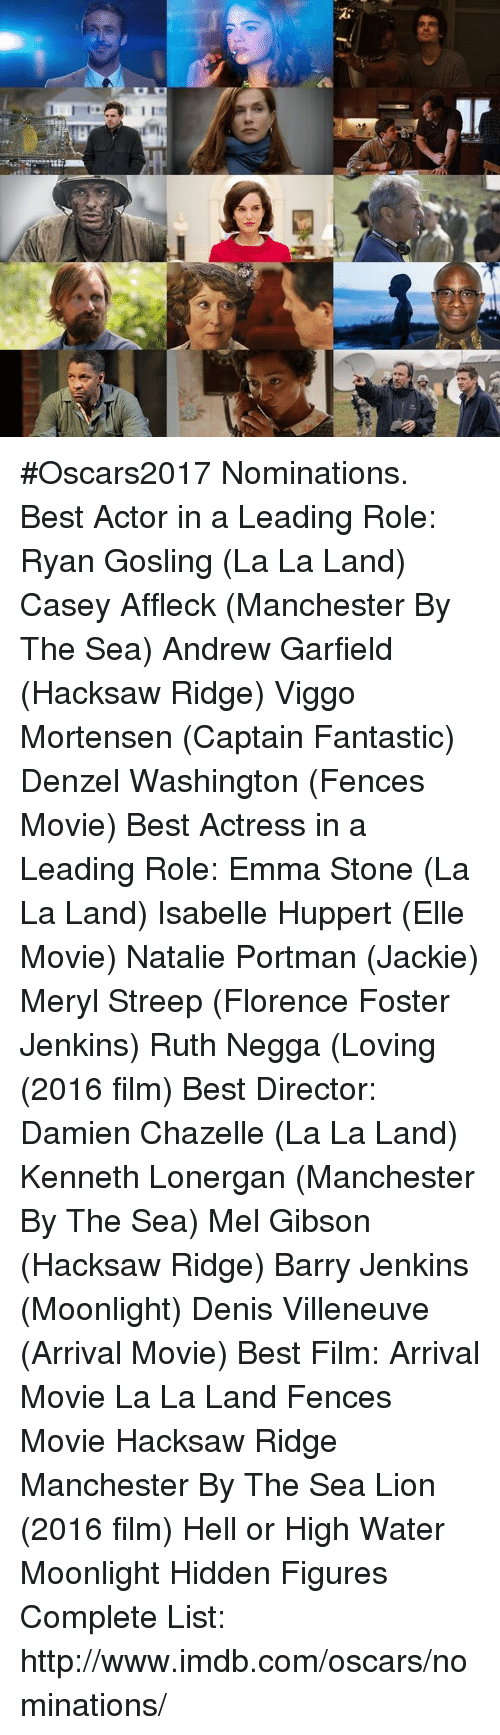 Oscar Nominations: 1 I #Oscars2017 Nominations.  Best Actor in a Leading Role: Ryan Gosling (La La Land) Casey Affleck (Manchester By The Sea) Andrew Garfield (Hacksaw Ridge) Viggo Mortensen (Captain Fantastic) Denzel Washington (Fences Movie)  Best Actress in a Leading Role: Emma Stone (La La Land) Isabelle Huppert (Elle Movie) Natalie Portman (Jackie) Meryl Streep (Florence Foster Jenkins) Ruth Negga (Loving (2016 film)   Best Director: Damien Chazelle (La La Land) Kenneth Lonergan (Manchester By The Sea) Mel Gibson (Hacksaw Ridge) Barry Jenkins (Moonlight) Denis Villeneuve (Arrival Movie)  Best Film: Arrival Movie La La Land Fences Movie Hacksaw Ridge Manchester By The Sea Lion (2016 film) Hell or High Water Moonlight Hidden Figures  Complete List: http://www.imdb.com/oscars/nominations/